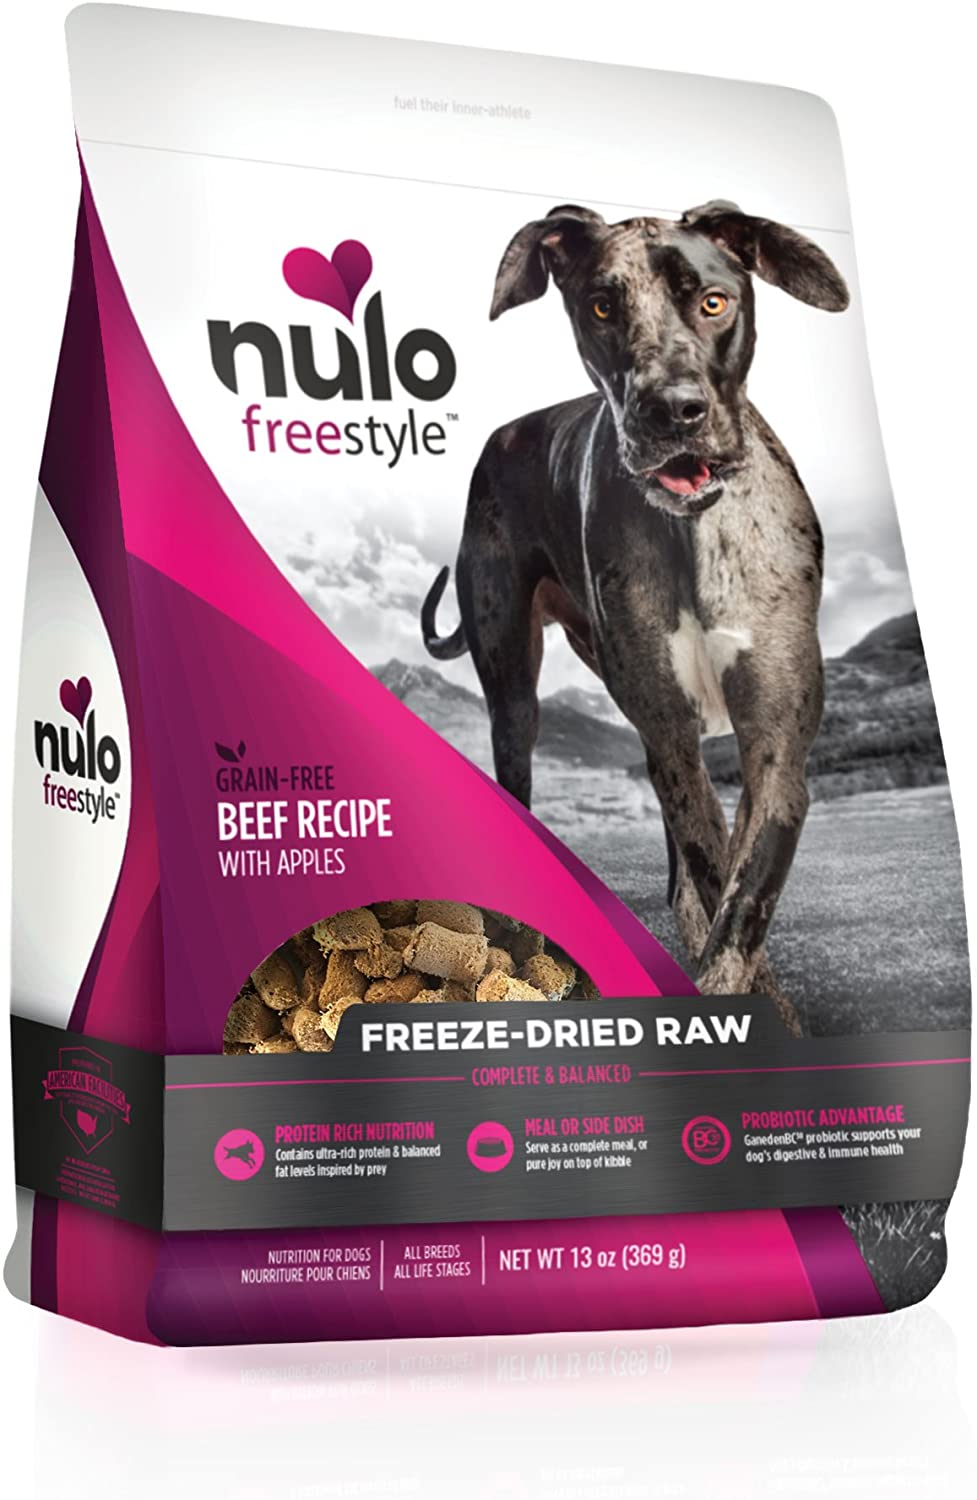 Nulo Freeze Dried Raw Dog Food for All Ages & Breeds: Natural Grain Free Formula with GanedenBC30 Probiotics for Digestive & Immune Health - 5 or 13 oz Bag